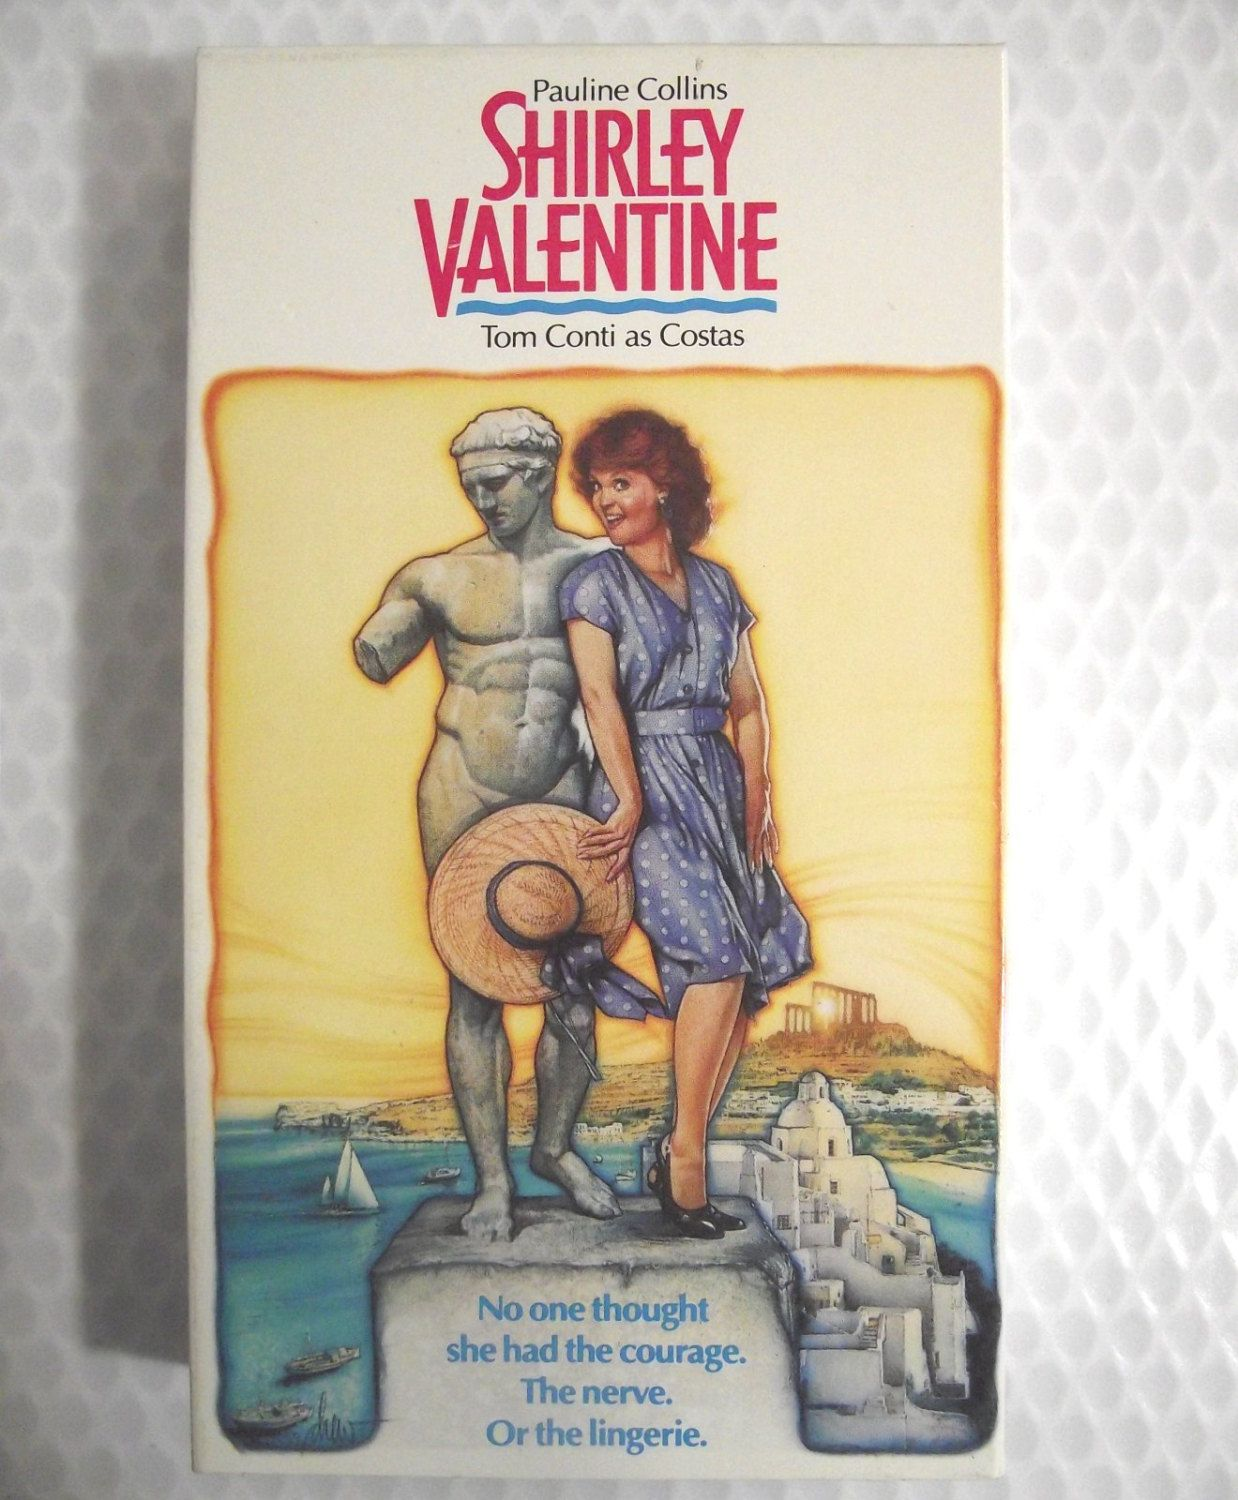 Vhs Shirley Valentine 1990 Video Movie Romantic Comedy Pauline Collins Tom Conti Costas Greece Mediterranean Aegean Sea Beaches Love Ntsc R Shirley Valentine Movies Tom Conti